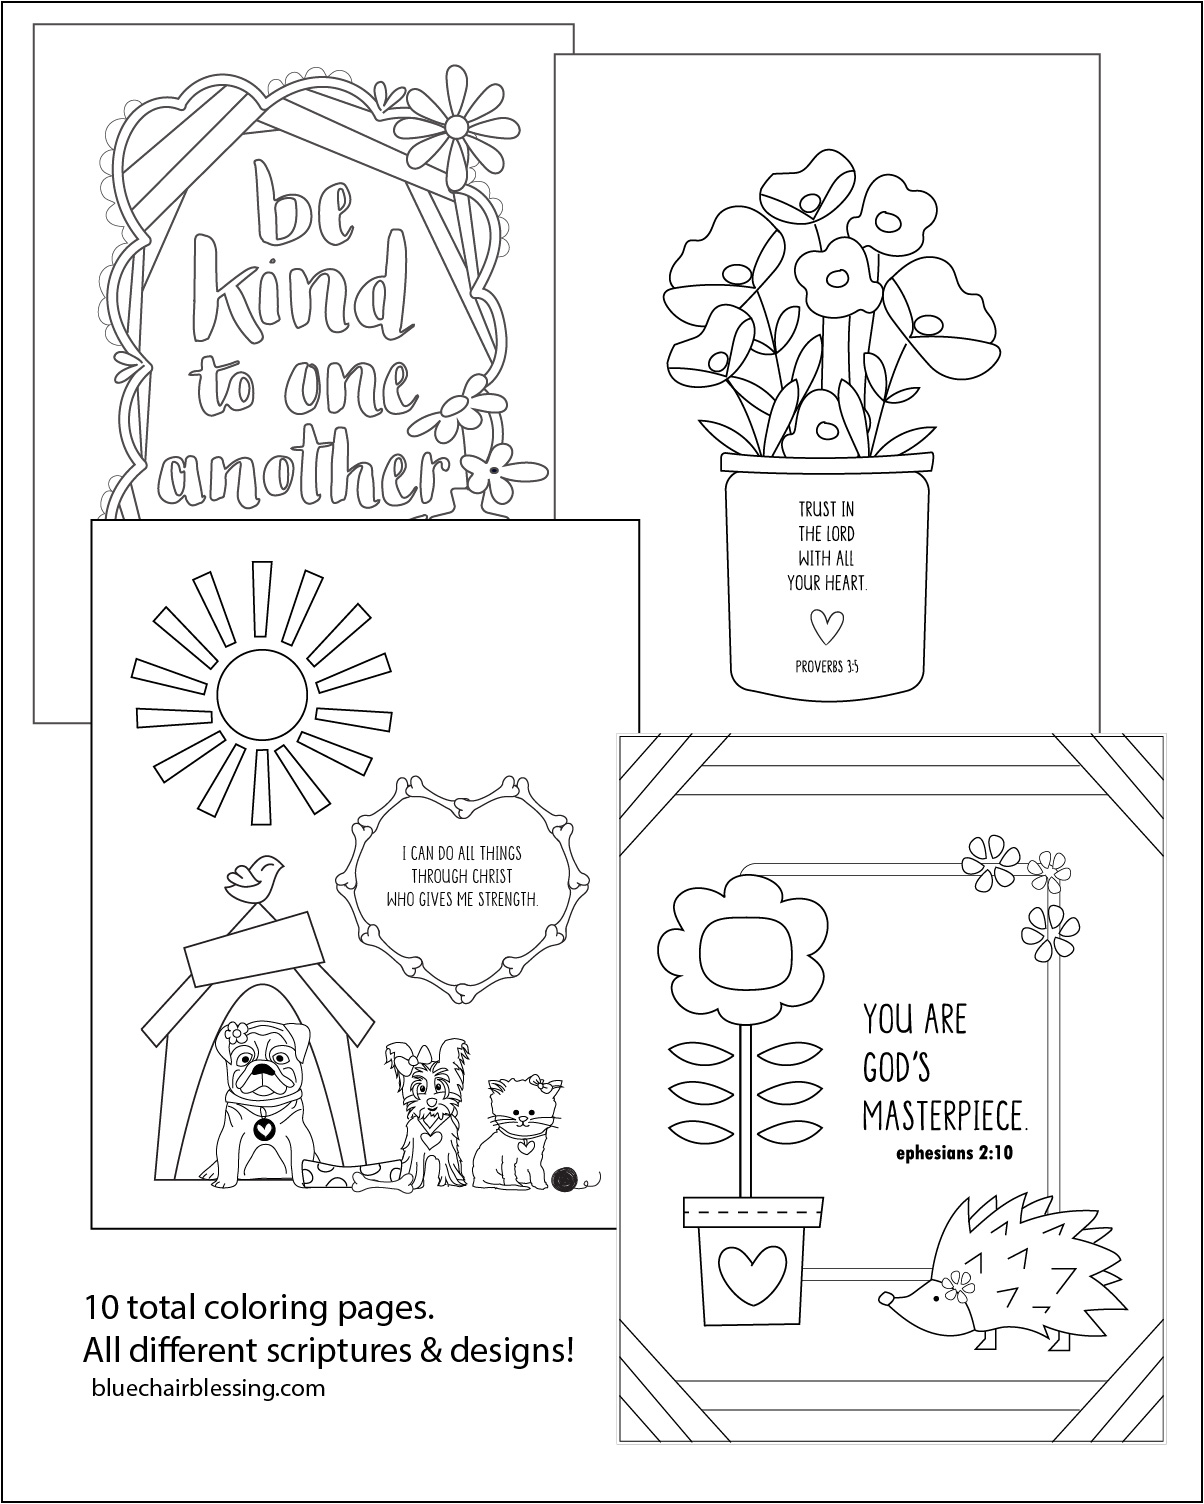 Christian Kids printable coloring book with scripture